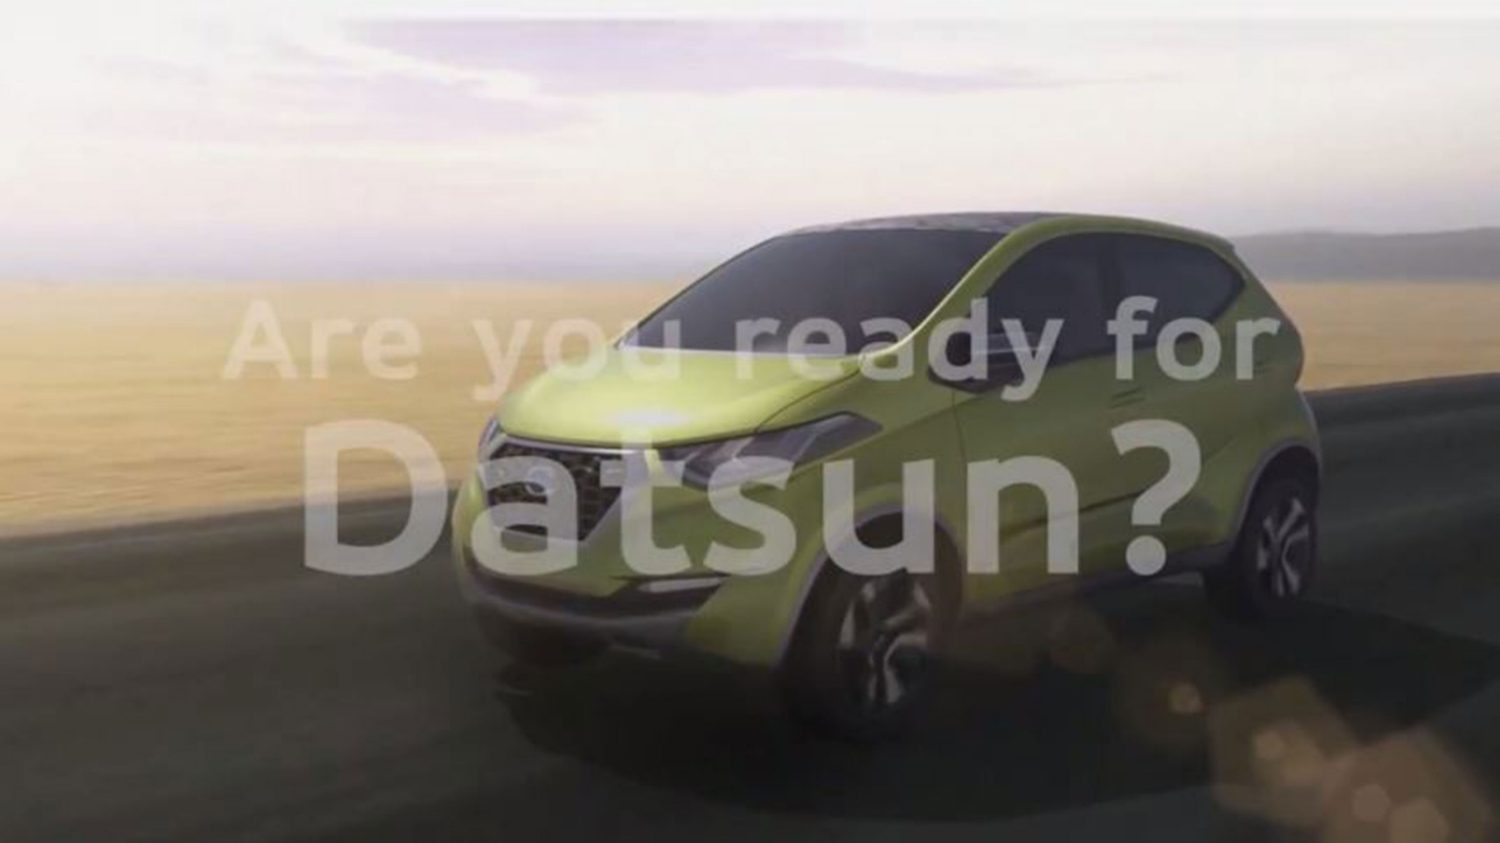 Are you ready for Datsun?